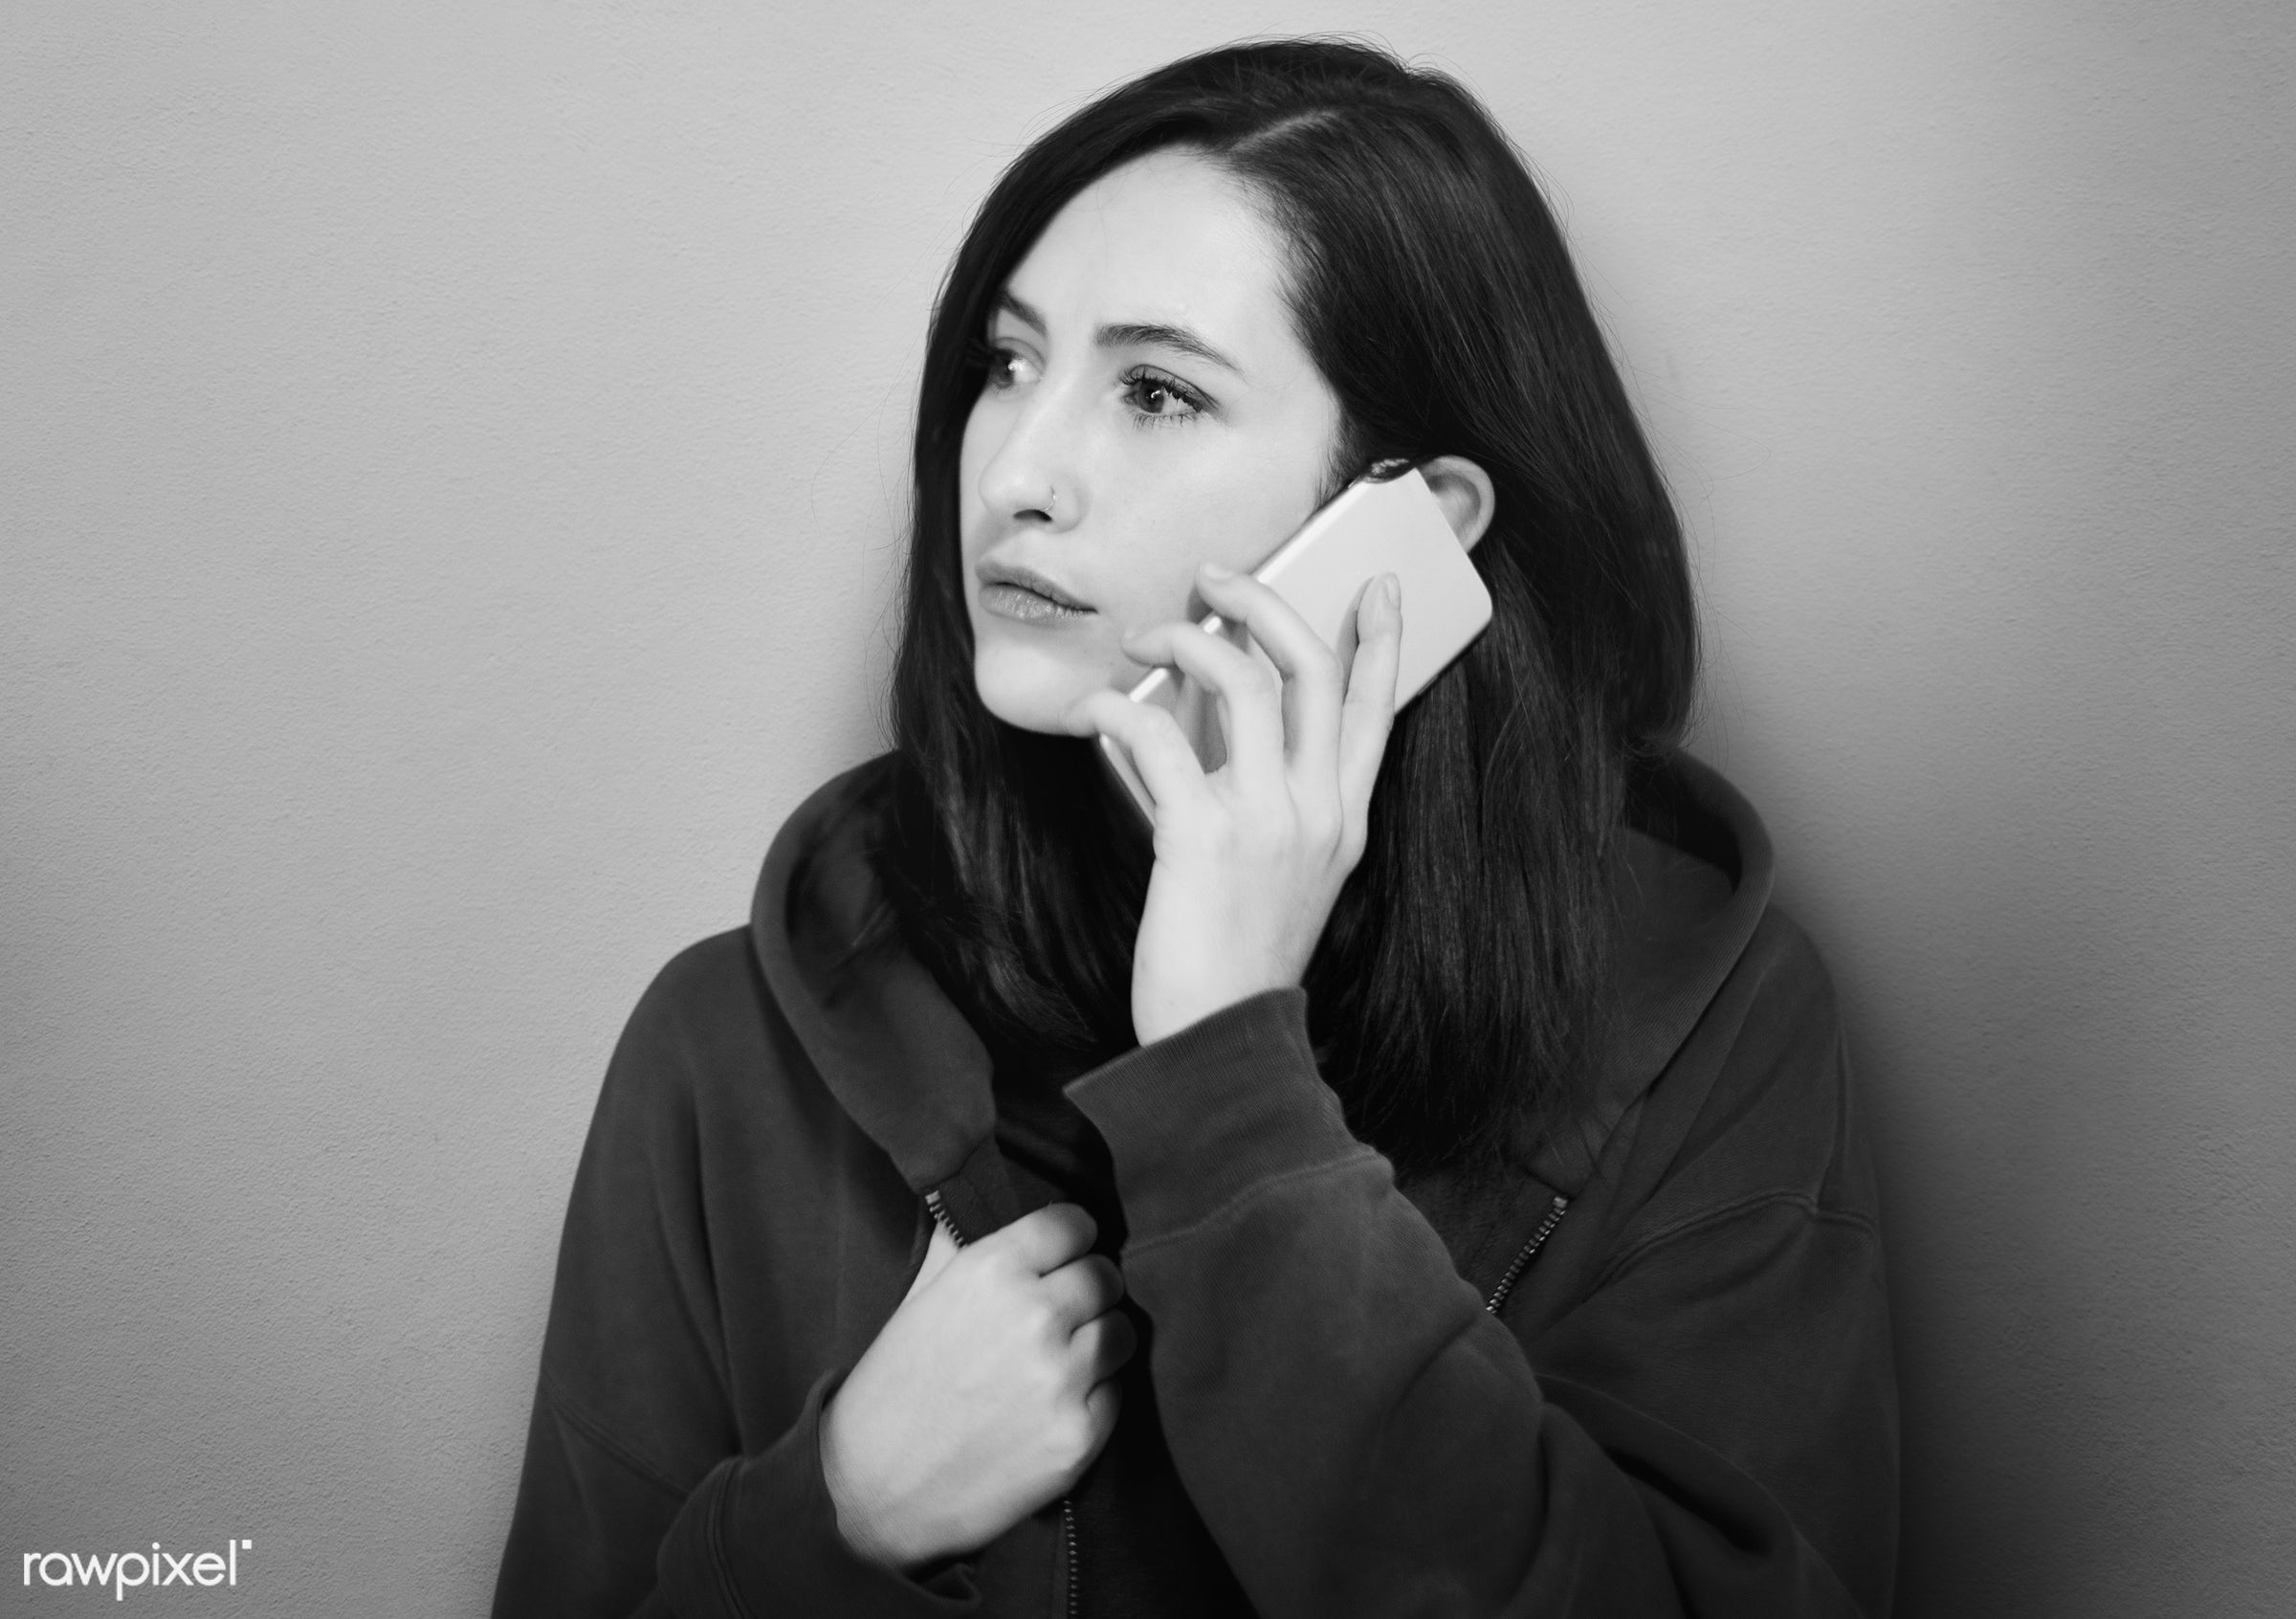 alone, brunette, call, calling, casual, communication, connection, conversation, device, digital, electronic, expression,...